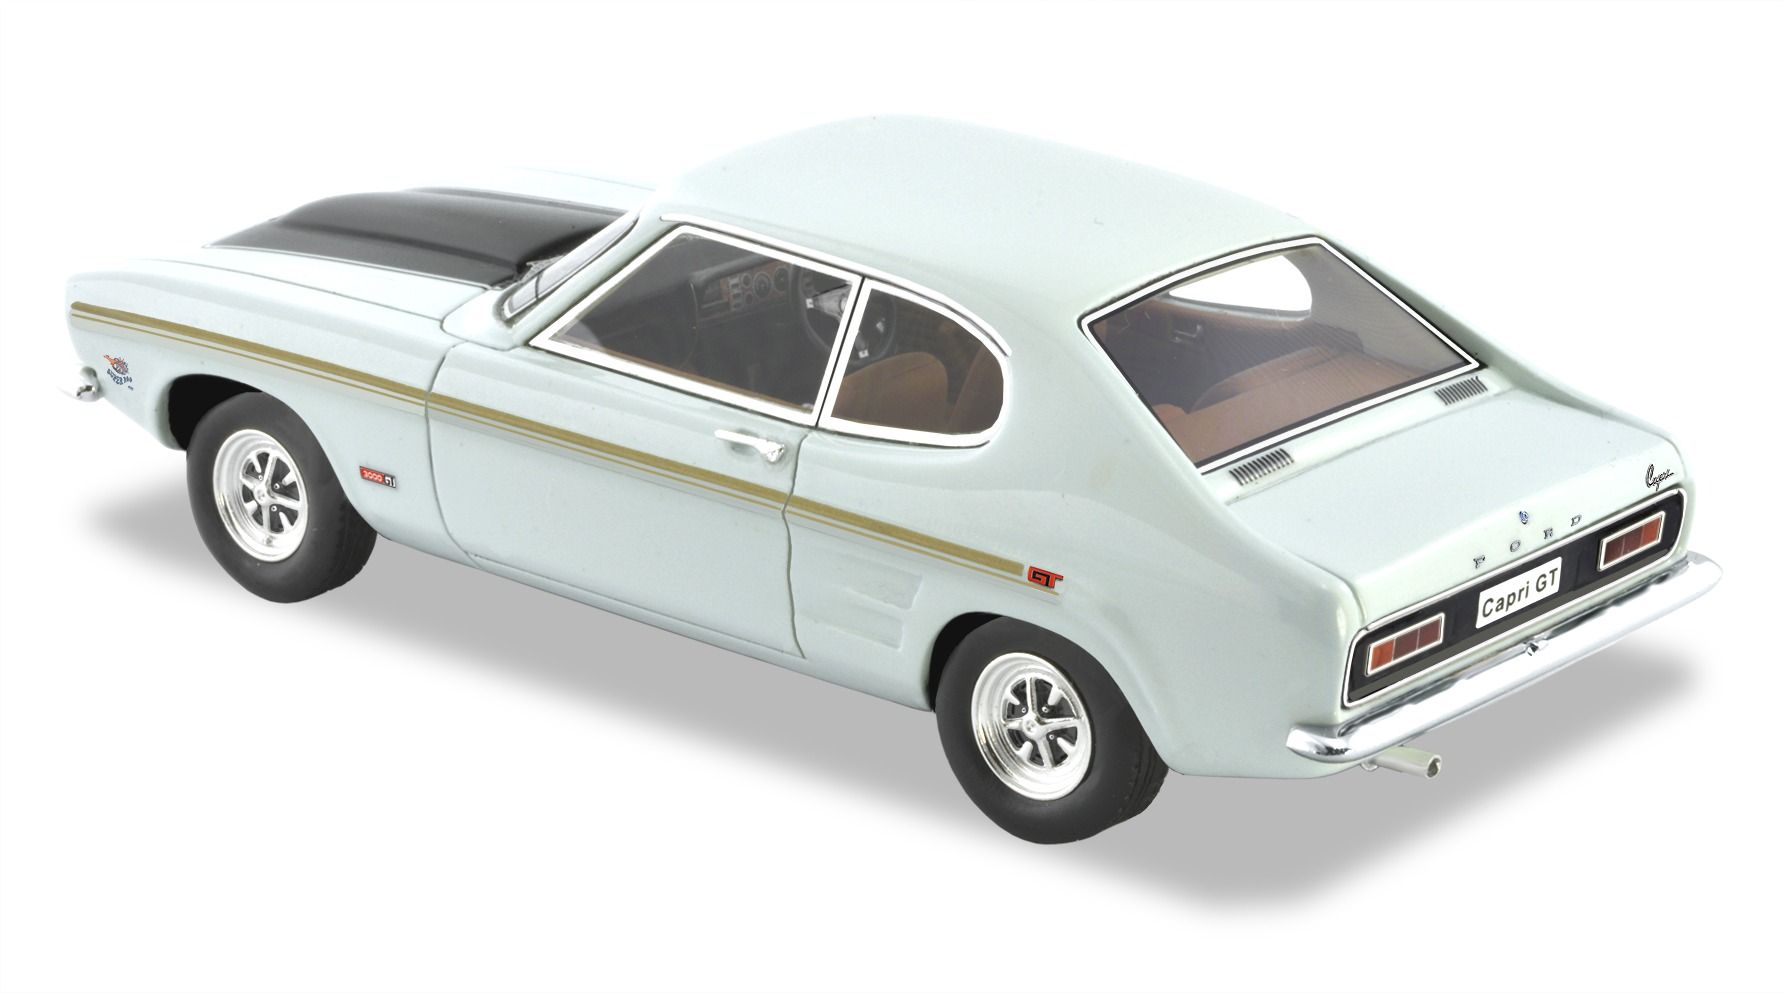 1970 Ford Capri GT V6 – Diamond White